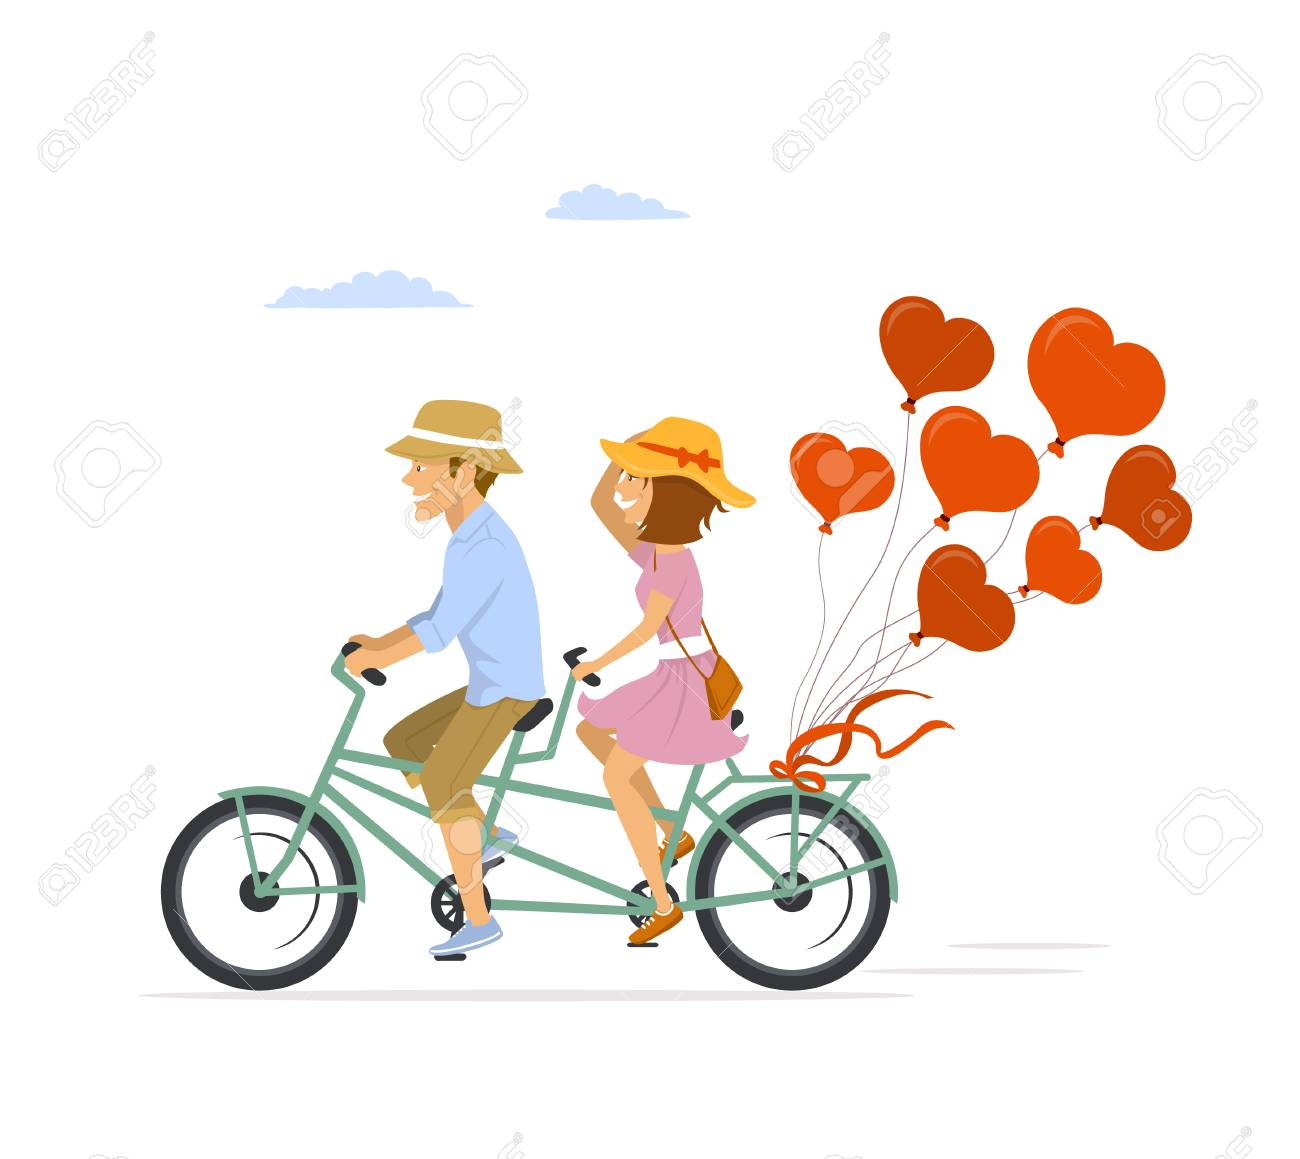 Cute romantic cheerful couple riding tandem bike with heart shaped balloons - 94465211